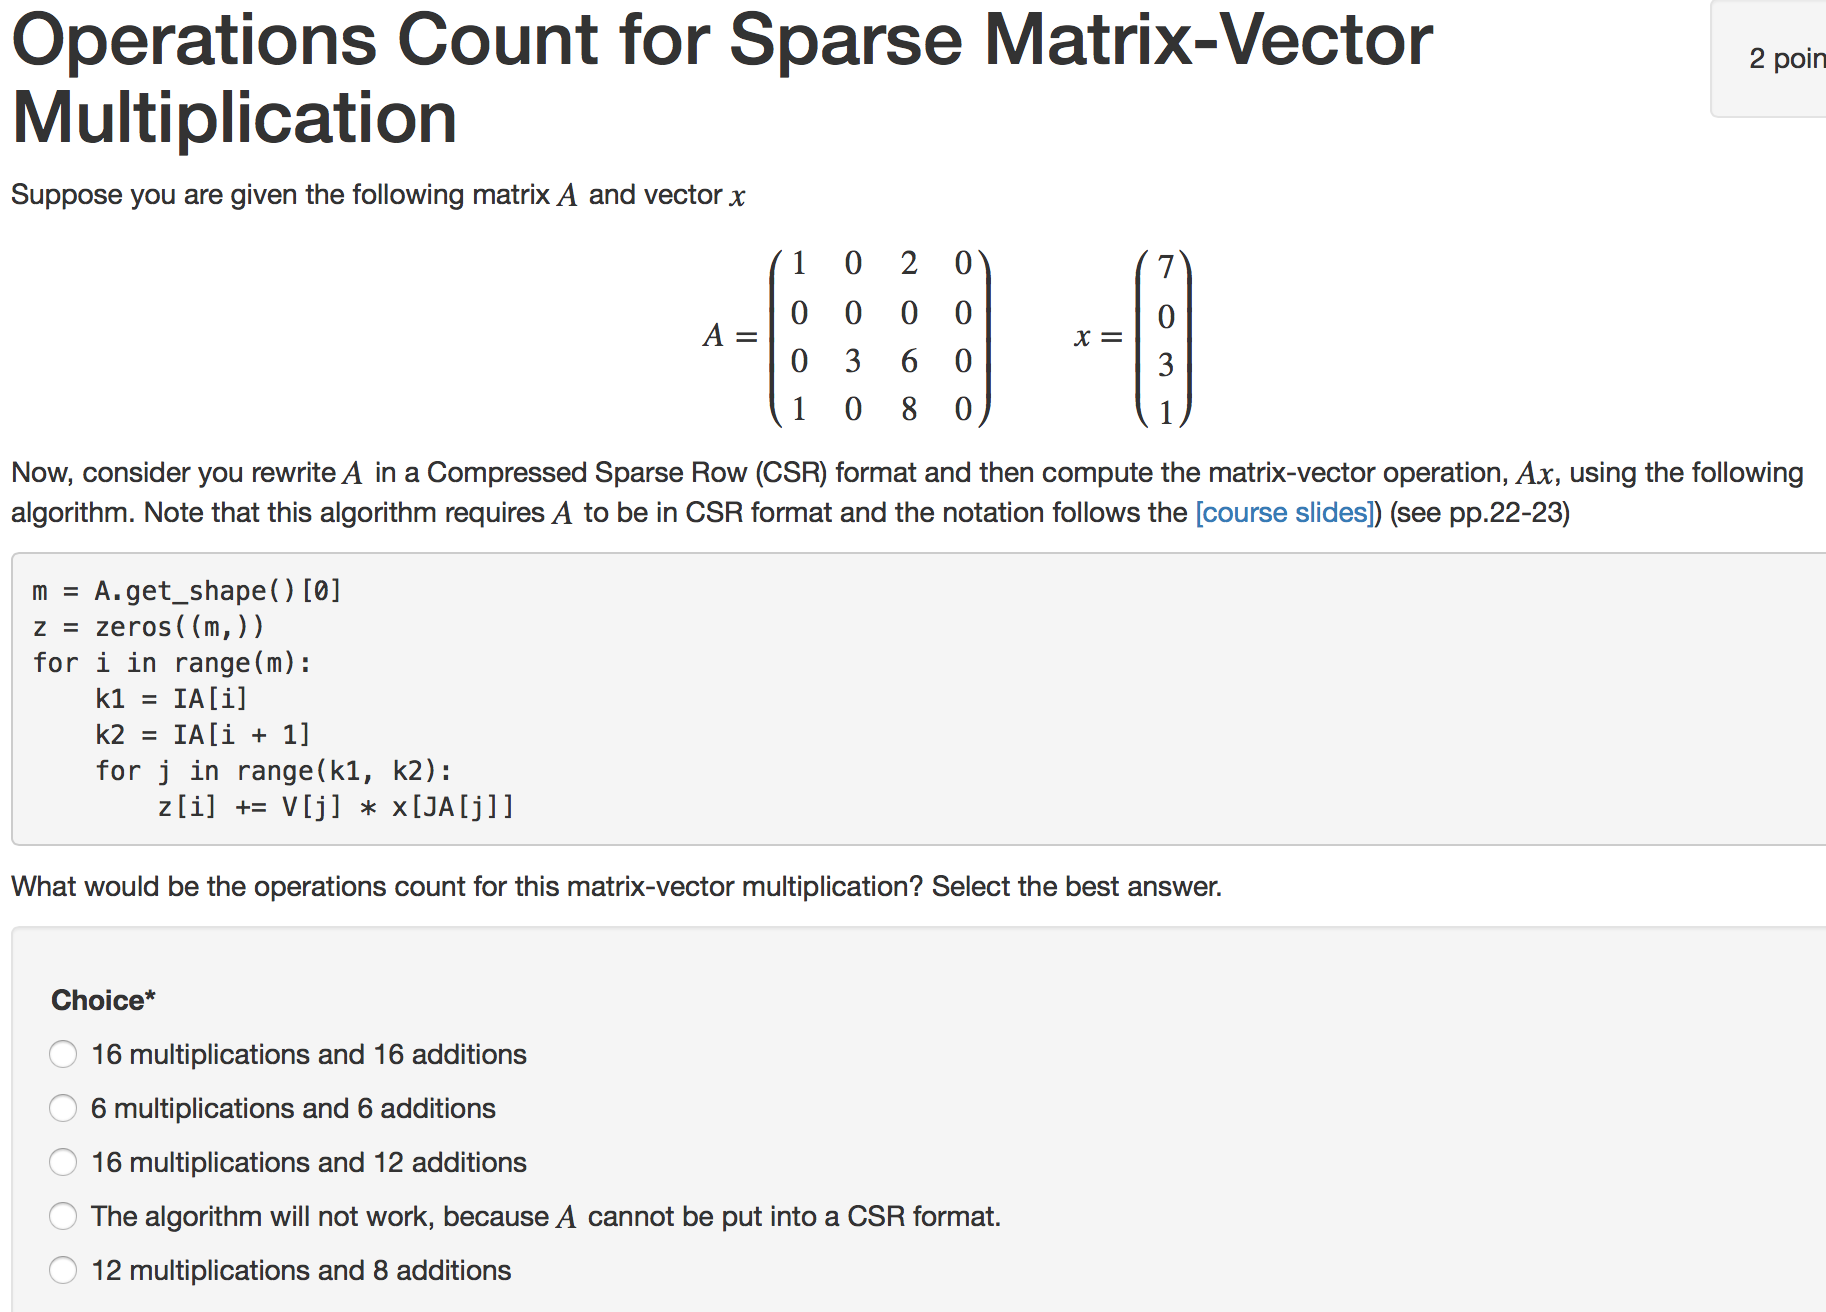 Operations Count For Sparse Matrix-Vector Multipli